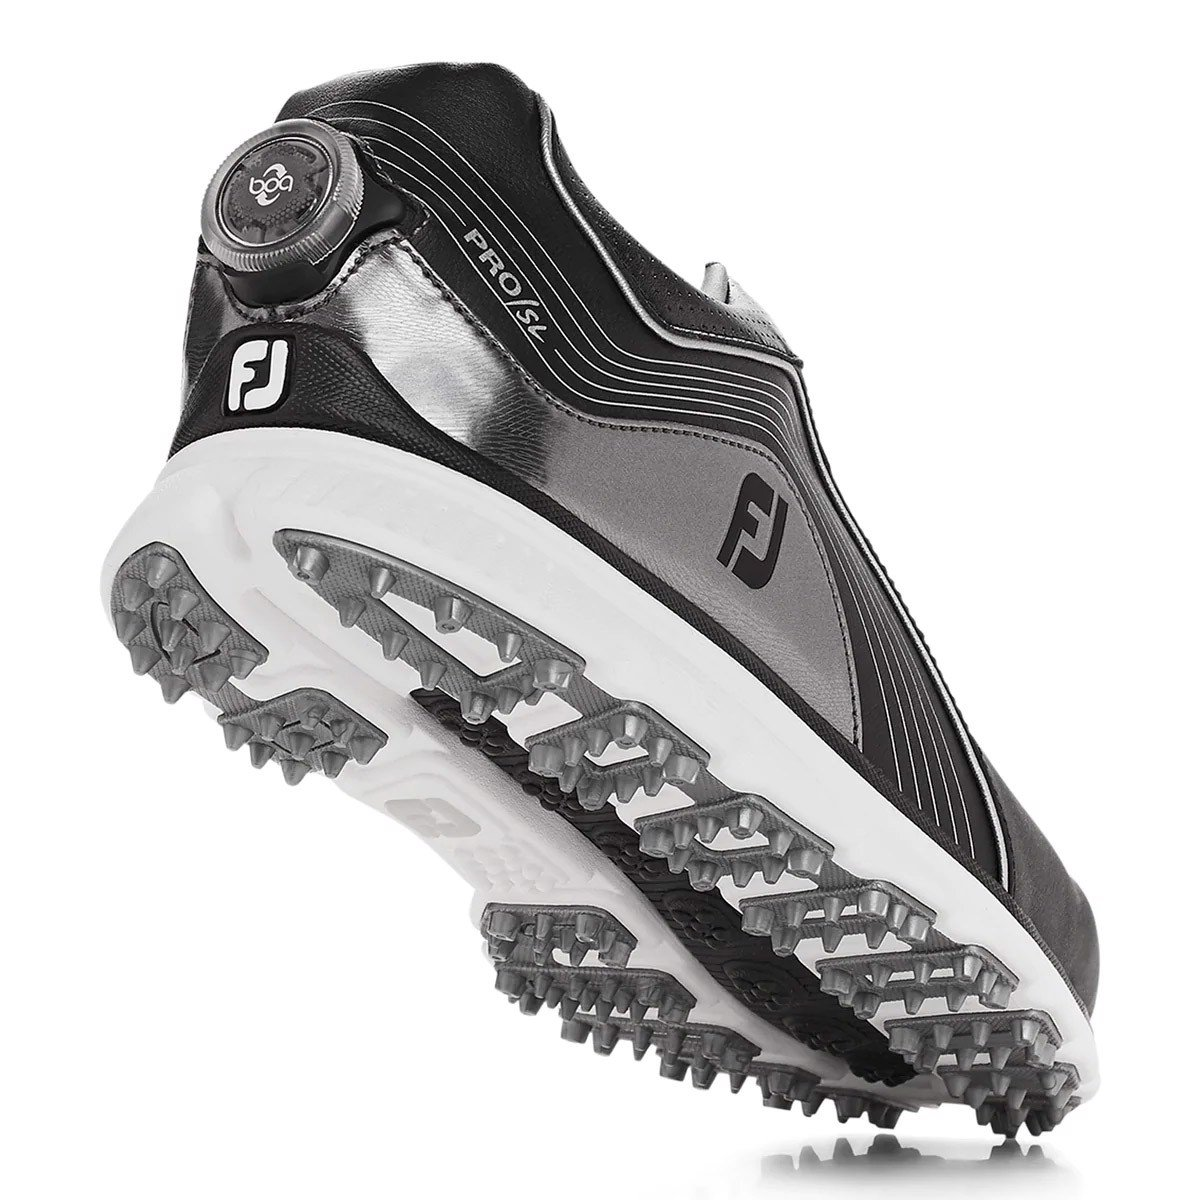 Giày golf nam FJ PRO SL 53275 BOA Spikeless | FootJoy